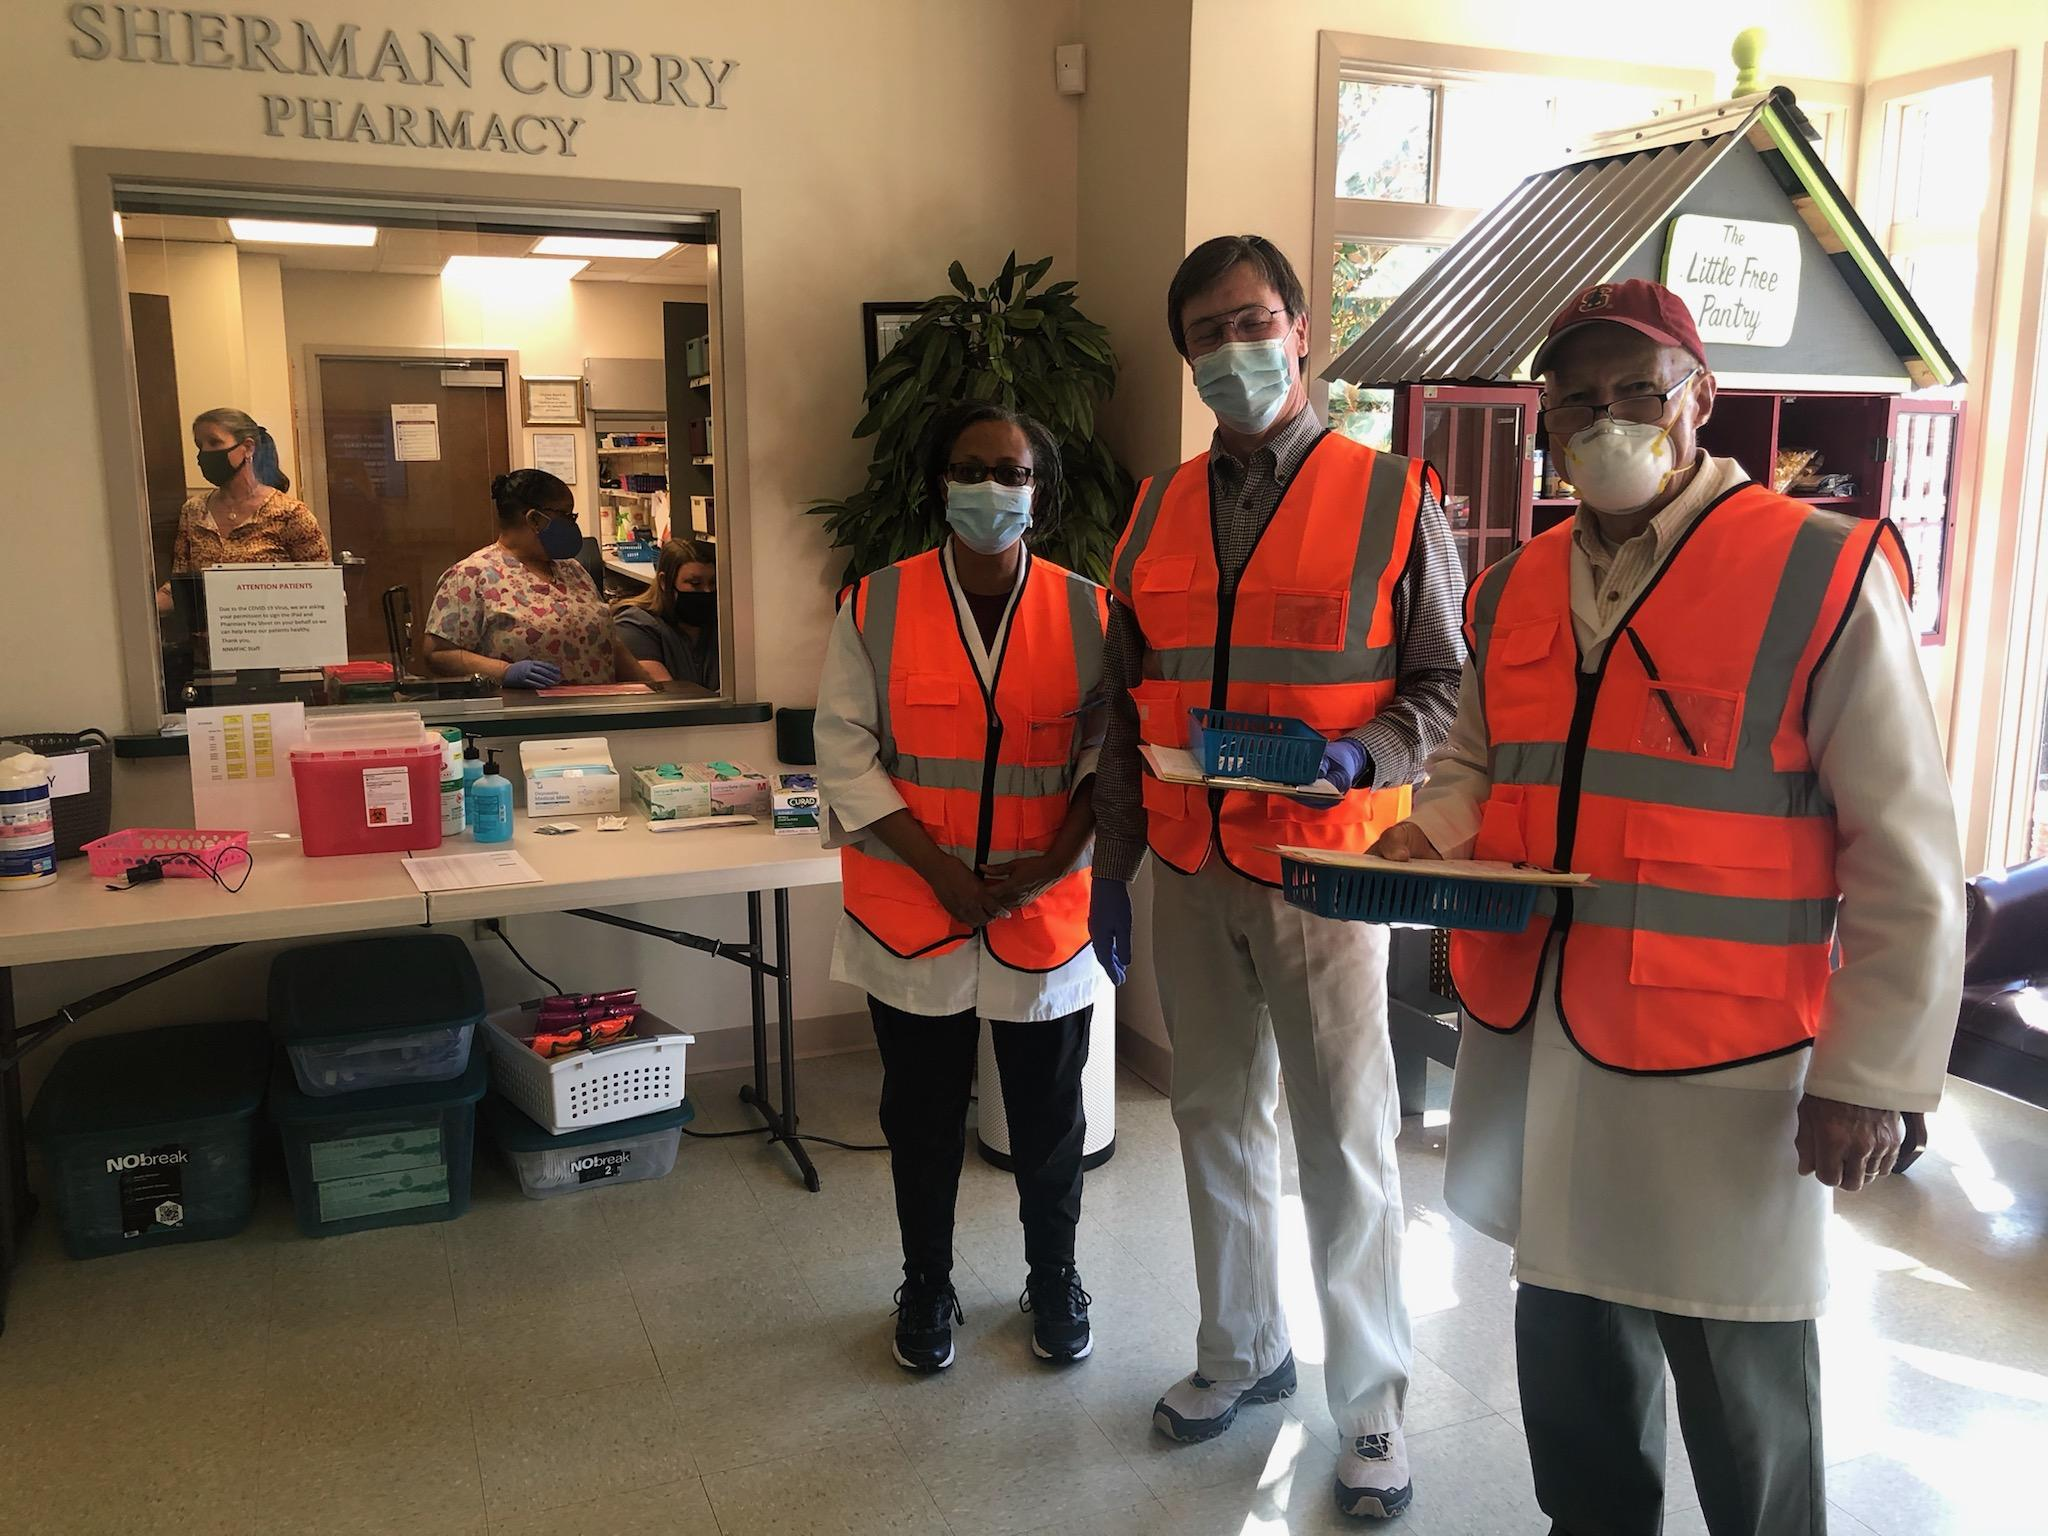 At left, behind the Pharmacy window, Pharmacist Britney Dedmond and Pharmacy Coordinator Angie Rich ready the syringes. In the lobby are three vaccinators – Pharmacist Beverly Thomas, Dr. Greg Lockhart, and Dr. Charles Maresh.